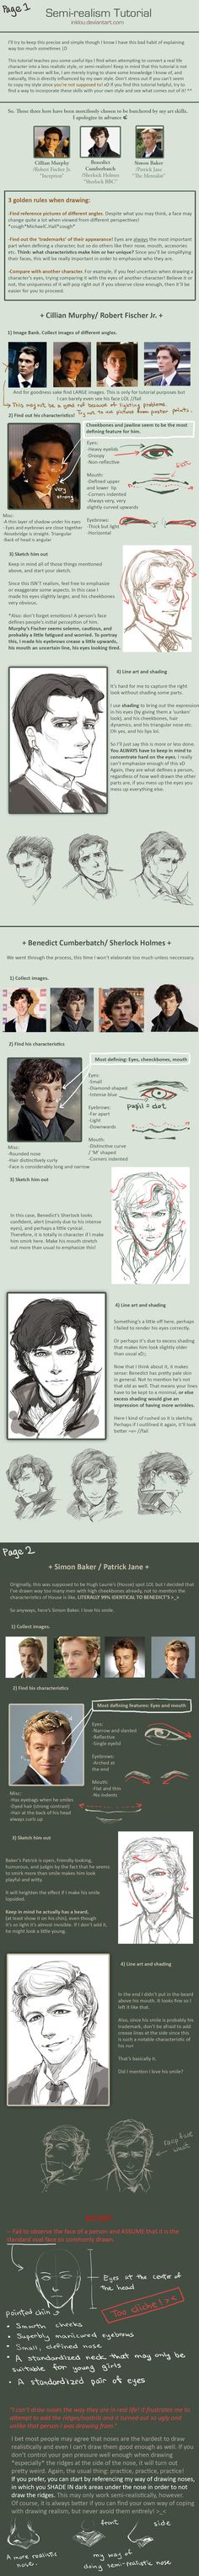 How to draw a semi-realistic face, facial features tutorial